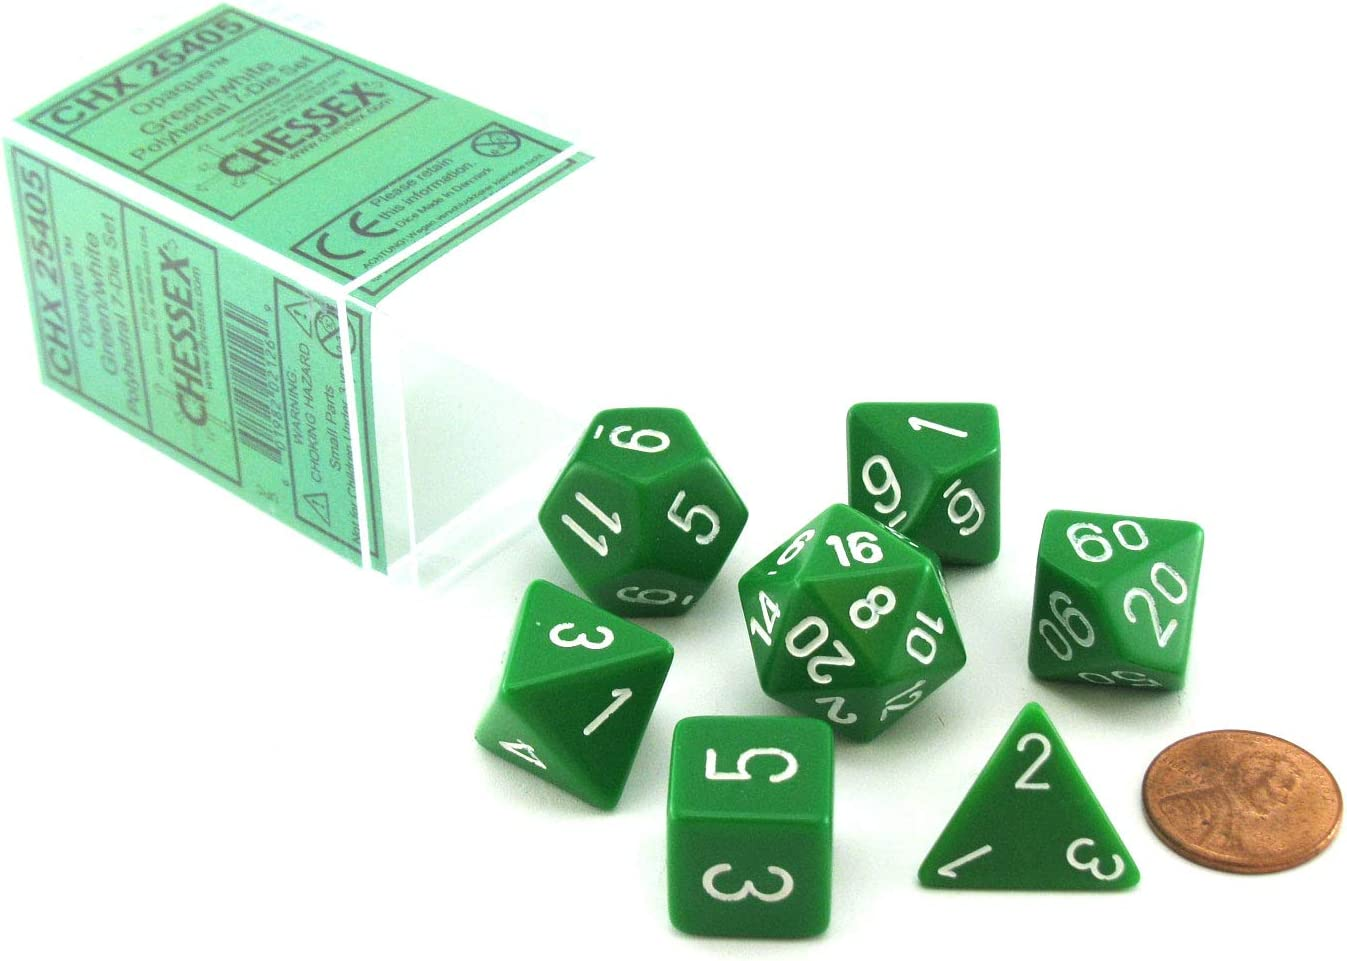 Blue with White Numbers Polyhedral 7-Die Opaque Chessex Dice Set